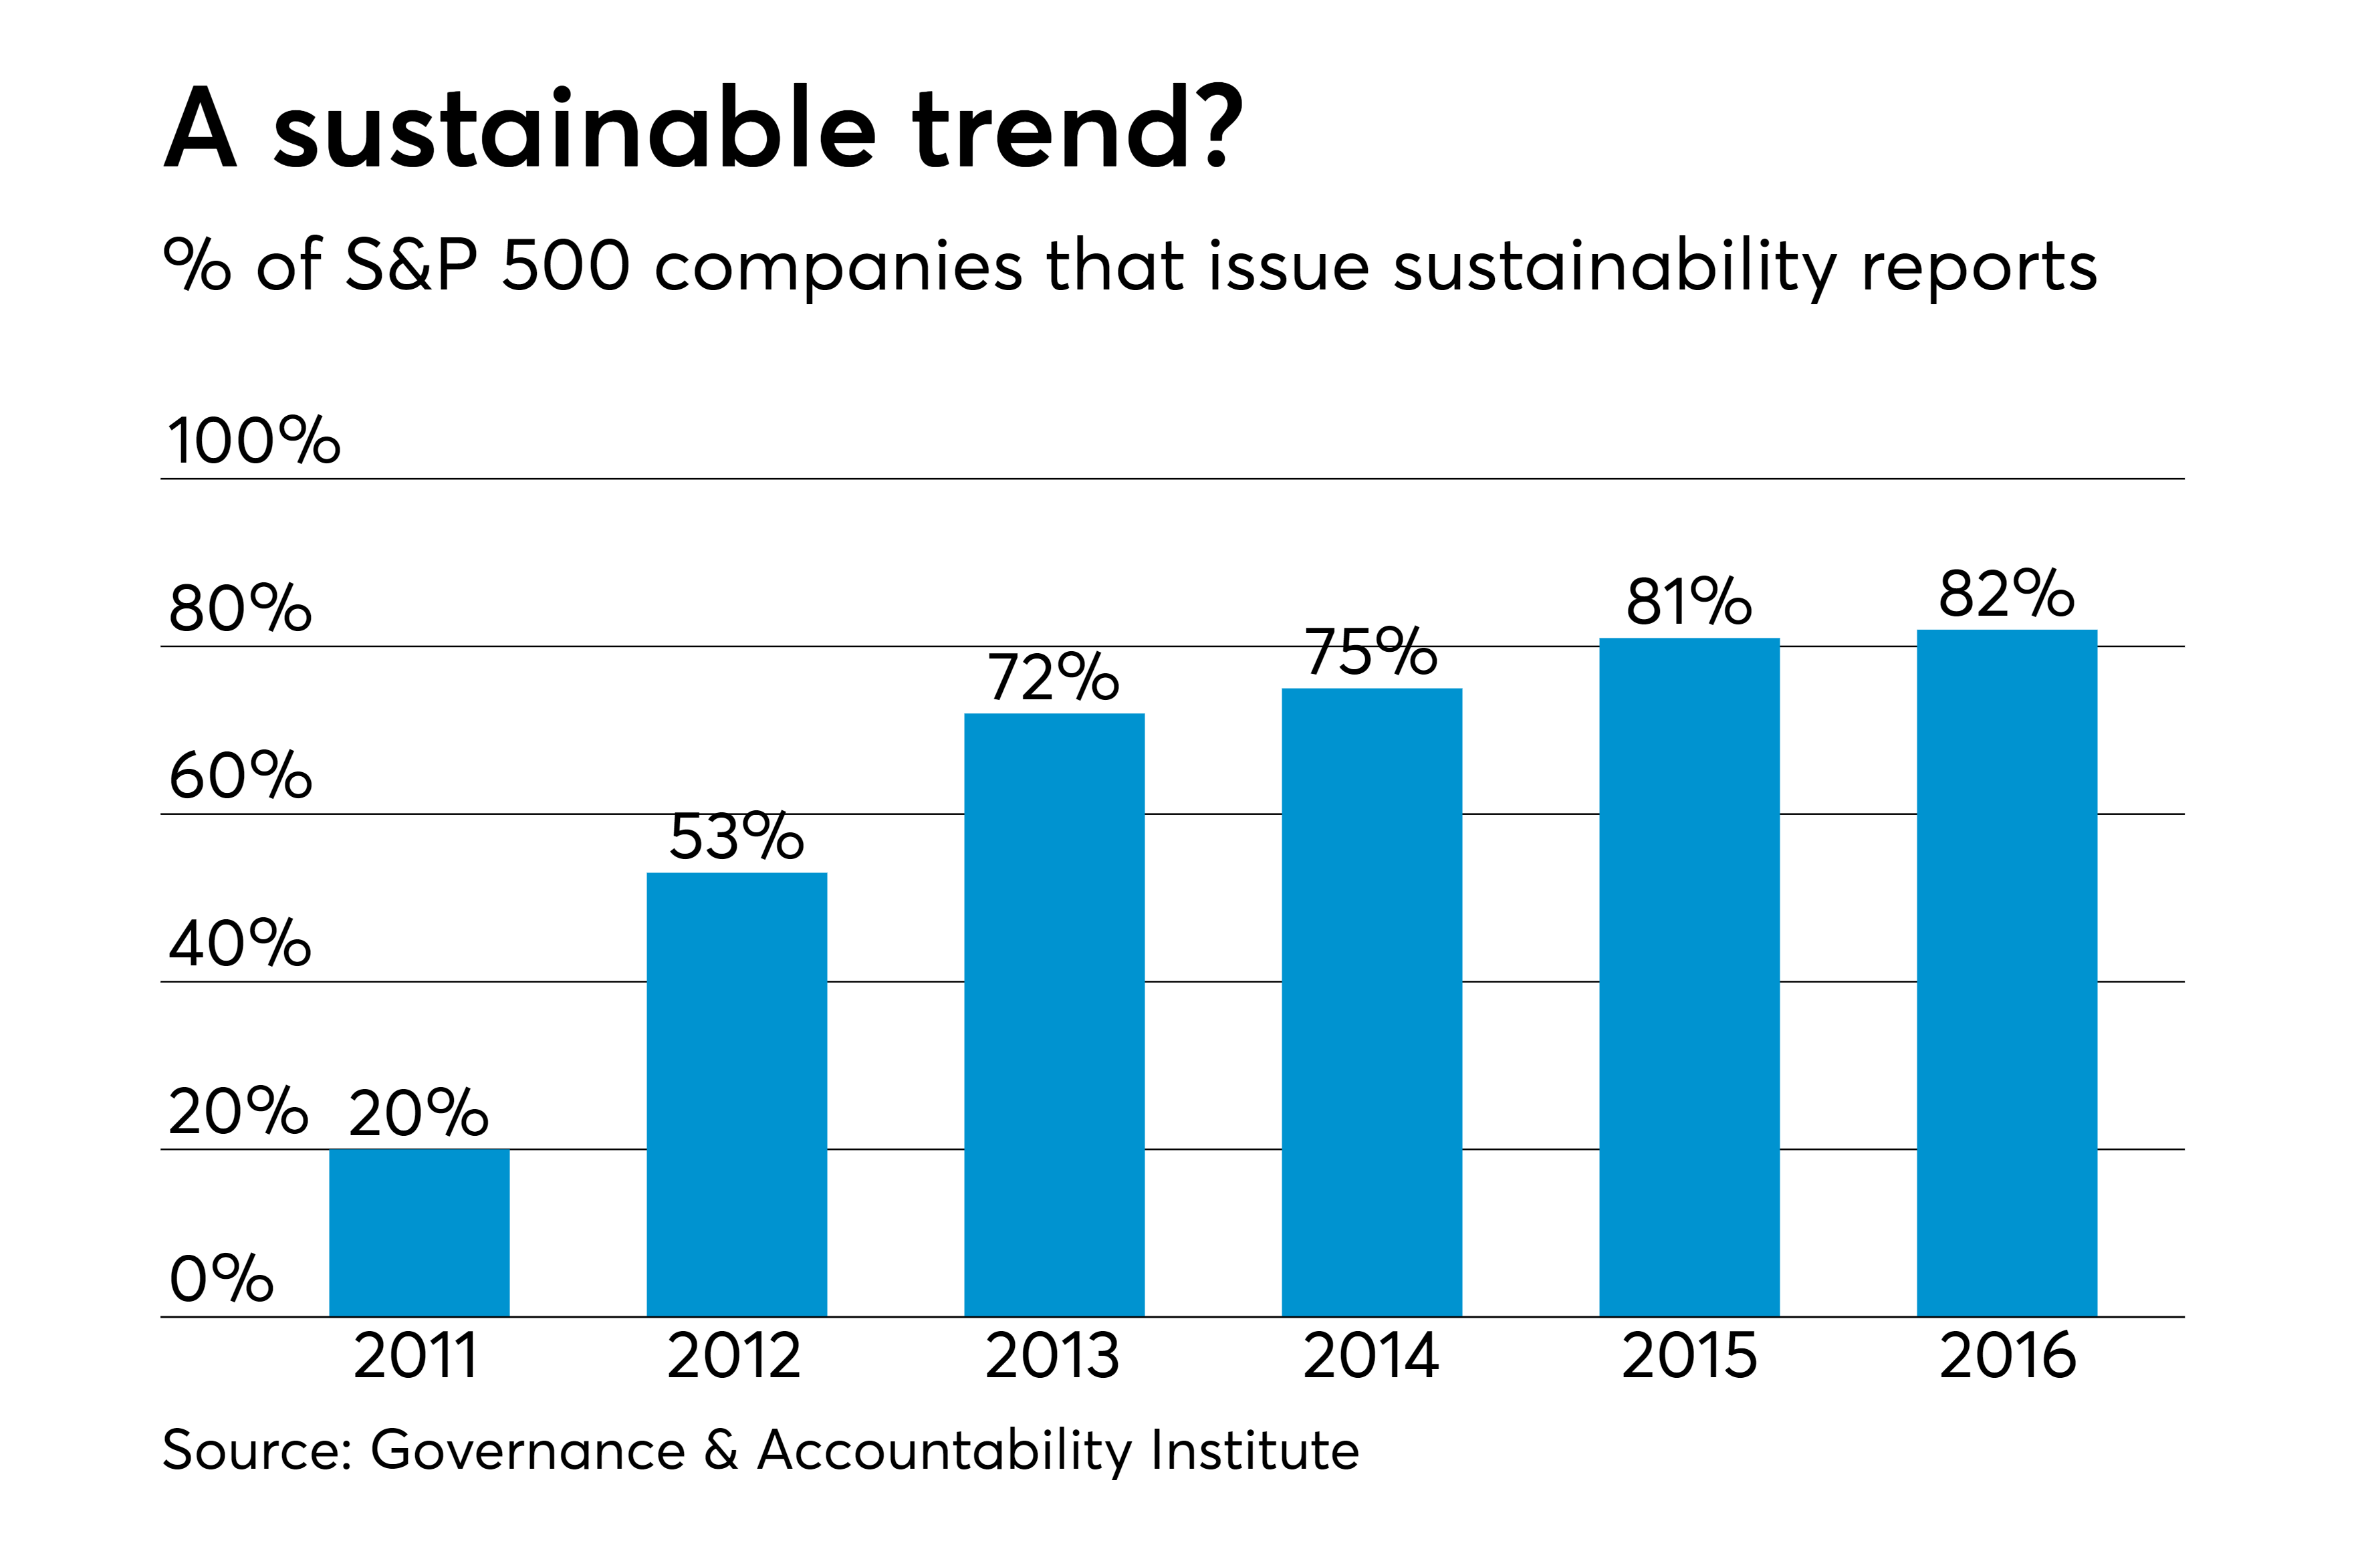 https://assets.sourcemedia.com/ba/29/1b6f1b7248518821a72fe233fa7c/at-101217-sustainabilityreports.png